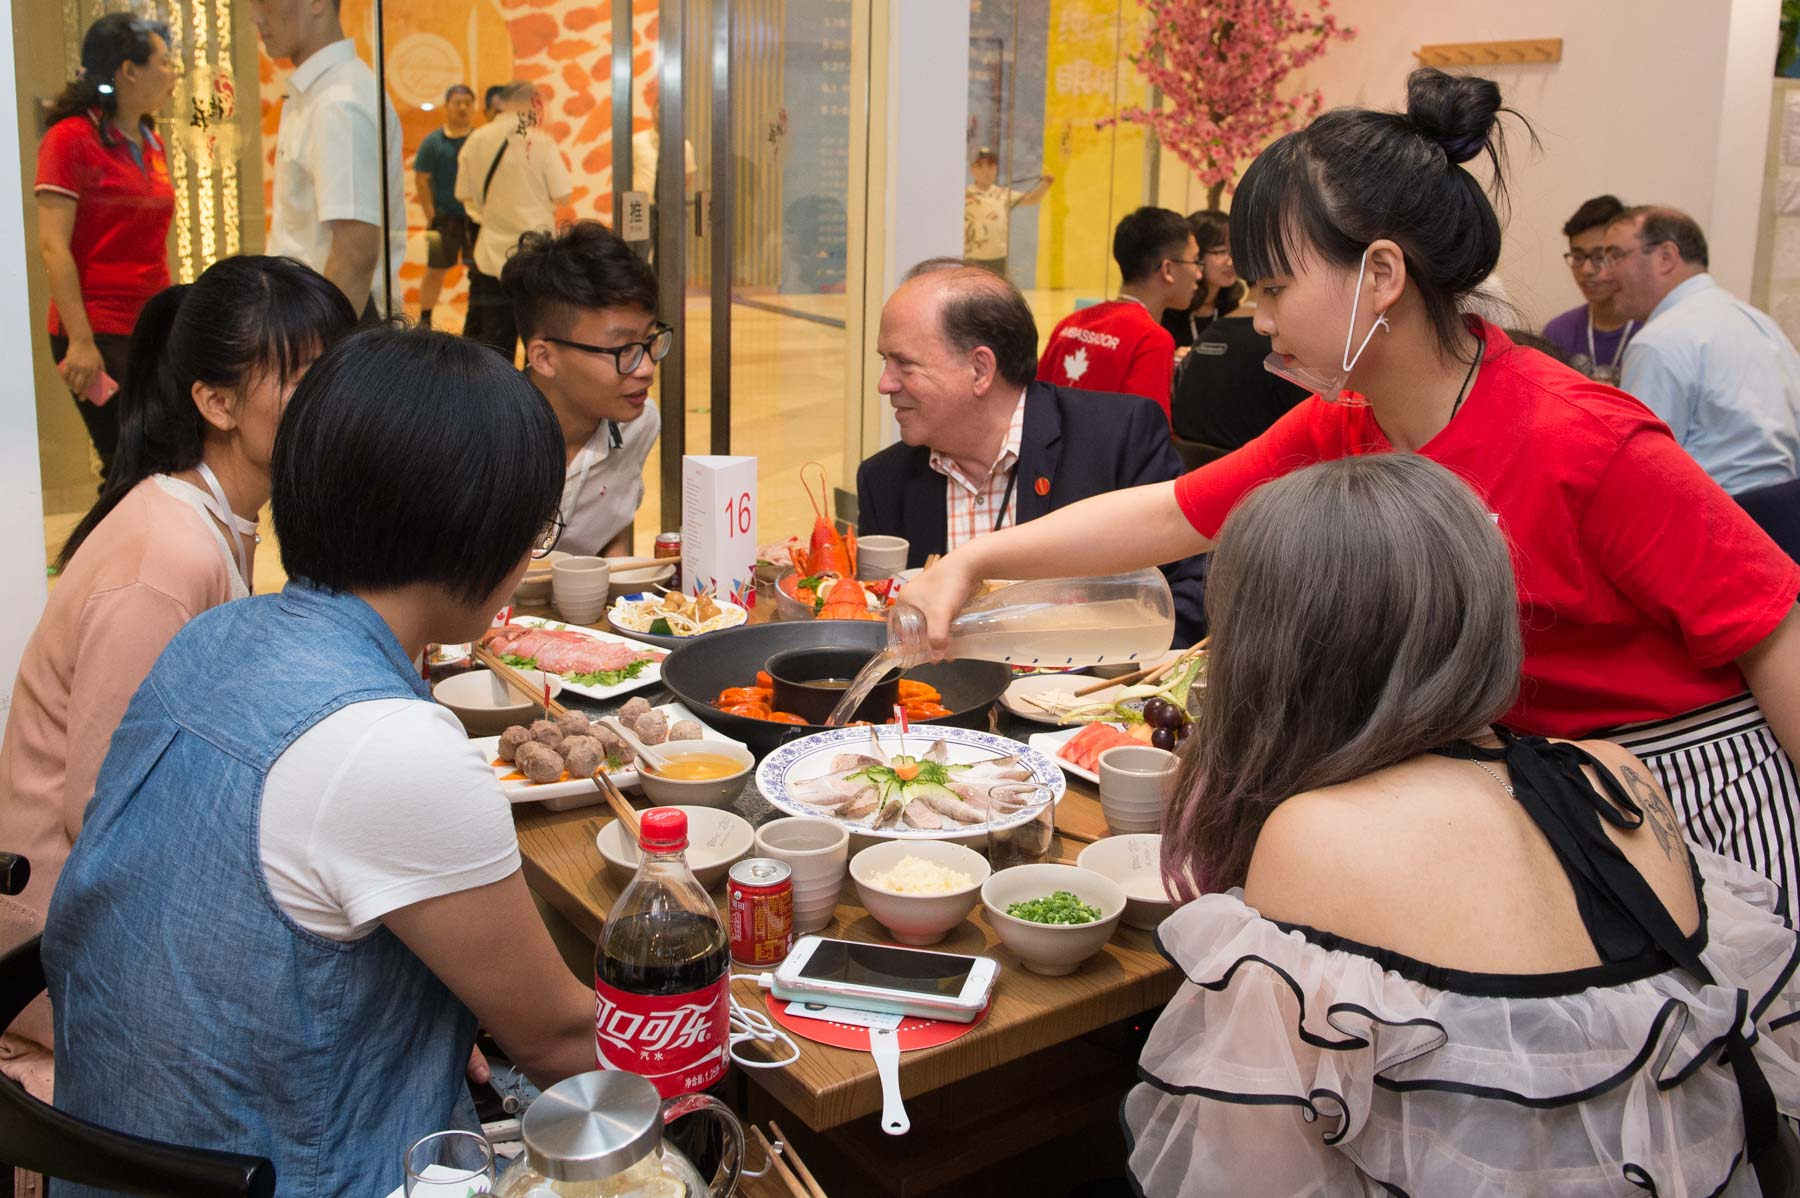 Hotpot cuisine remains the pride of local Chongqing people.